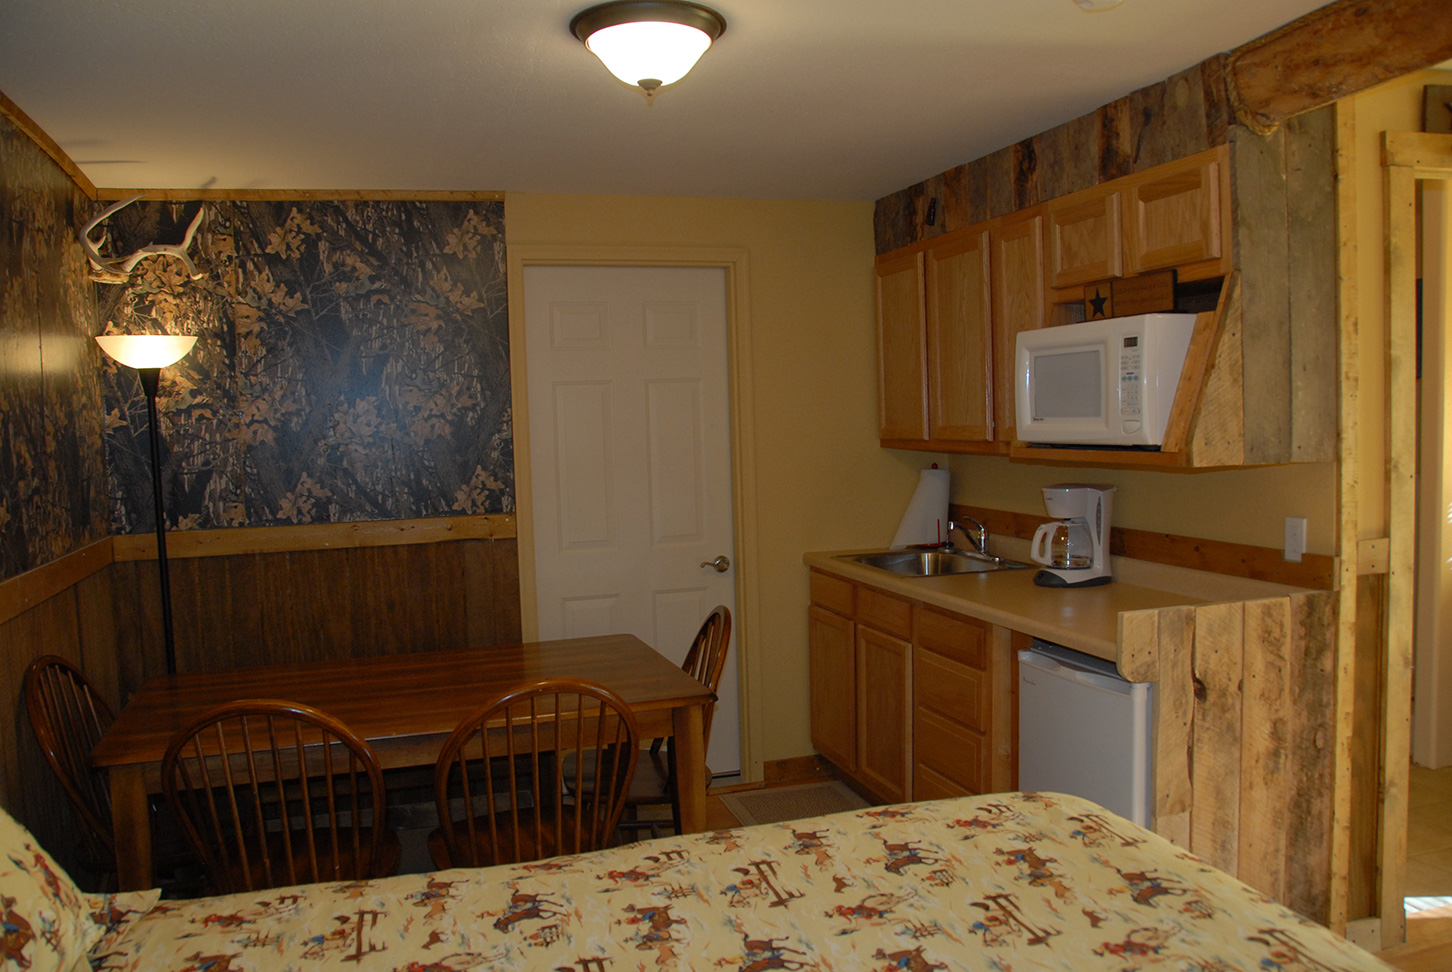 Room interior of a small kitchen and dinning room